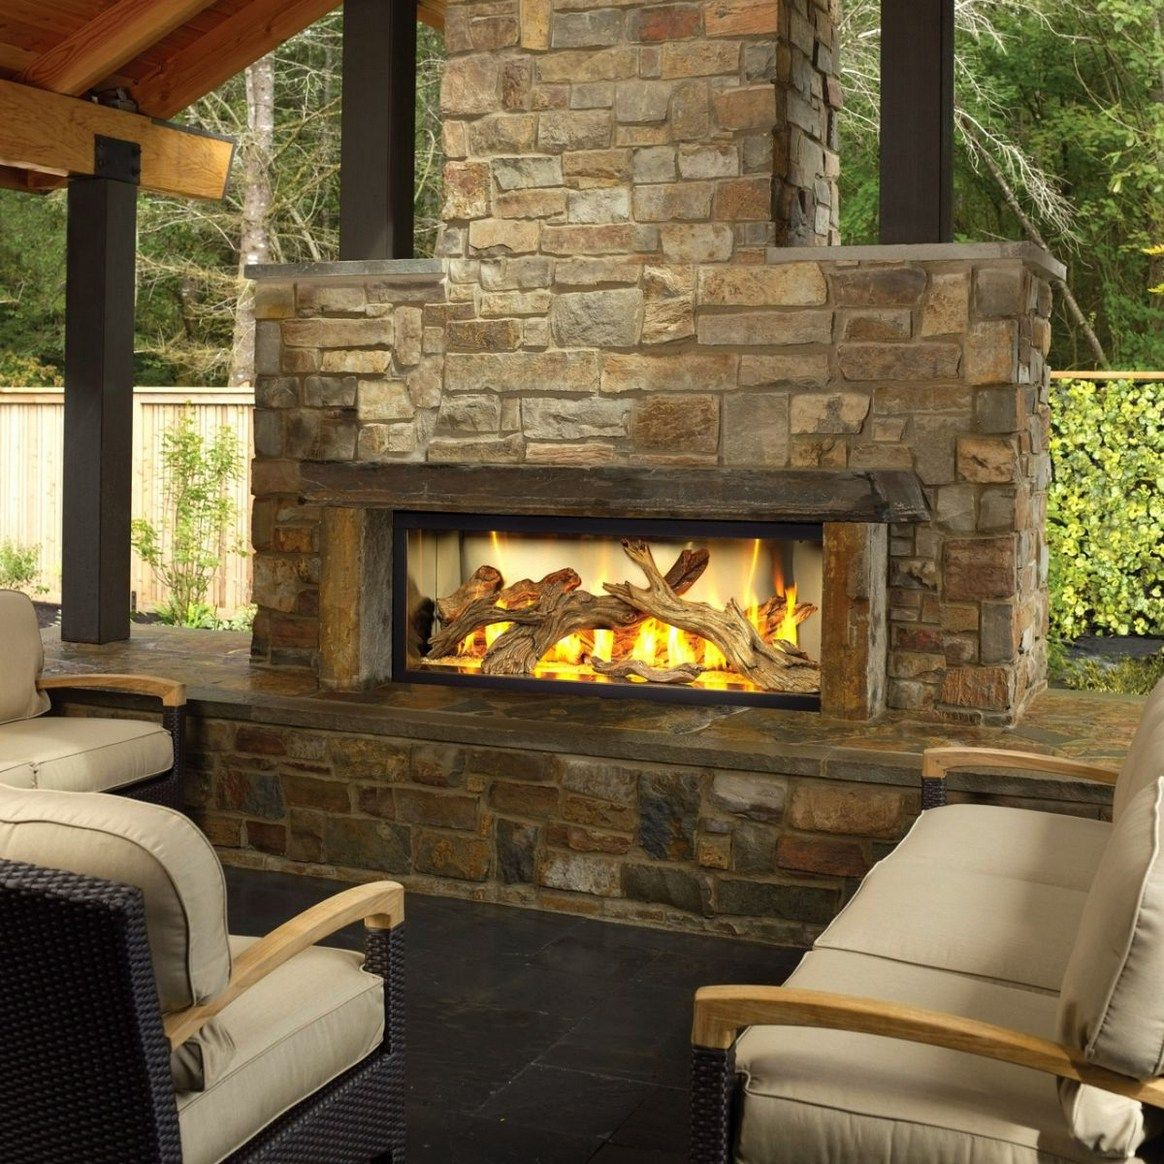 Combination Wood And Gas Fireplace Insert Luxury Outdoor Chat Area Massive Stone Faced Outdoor Gas